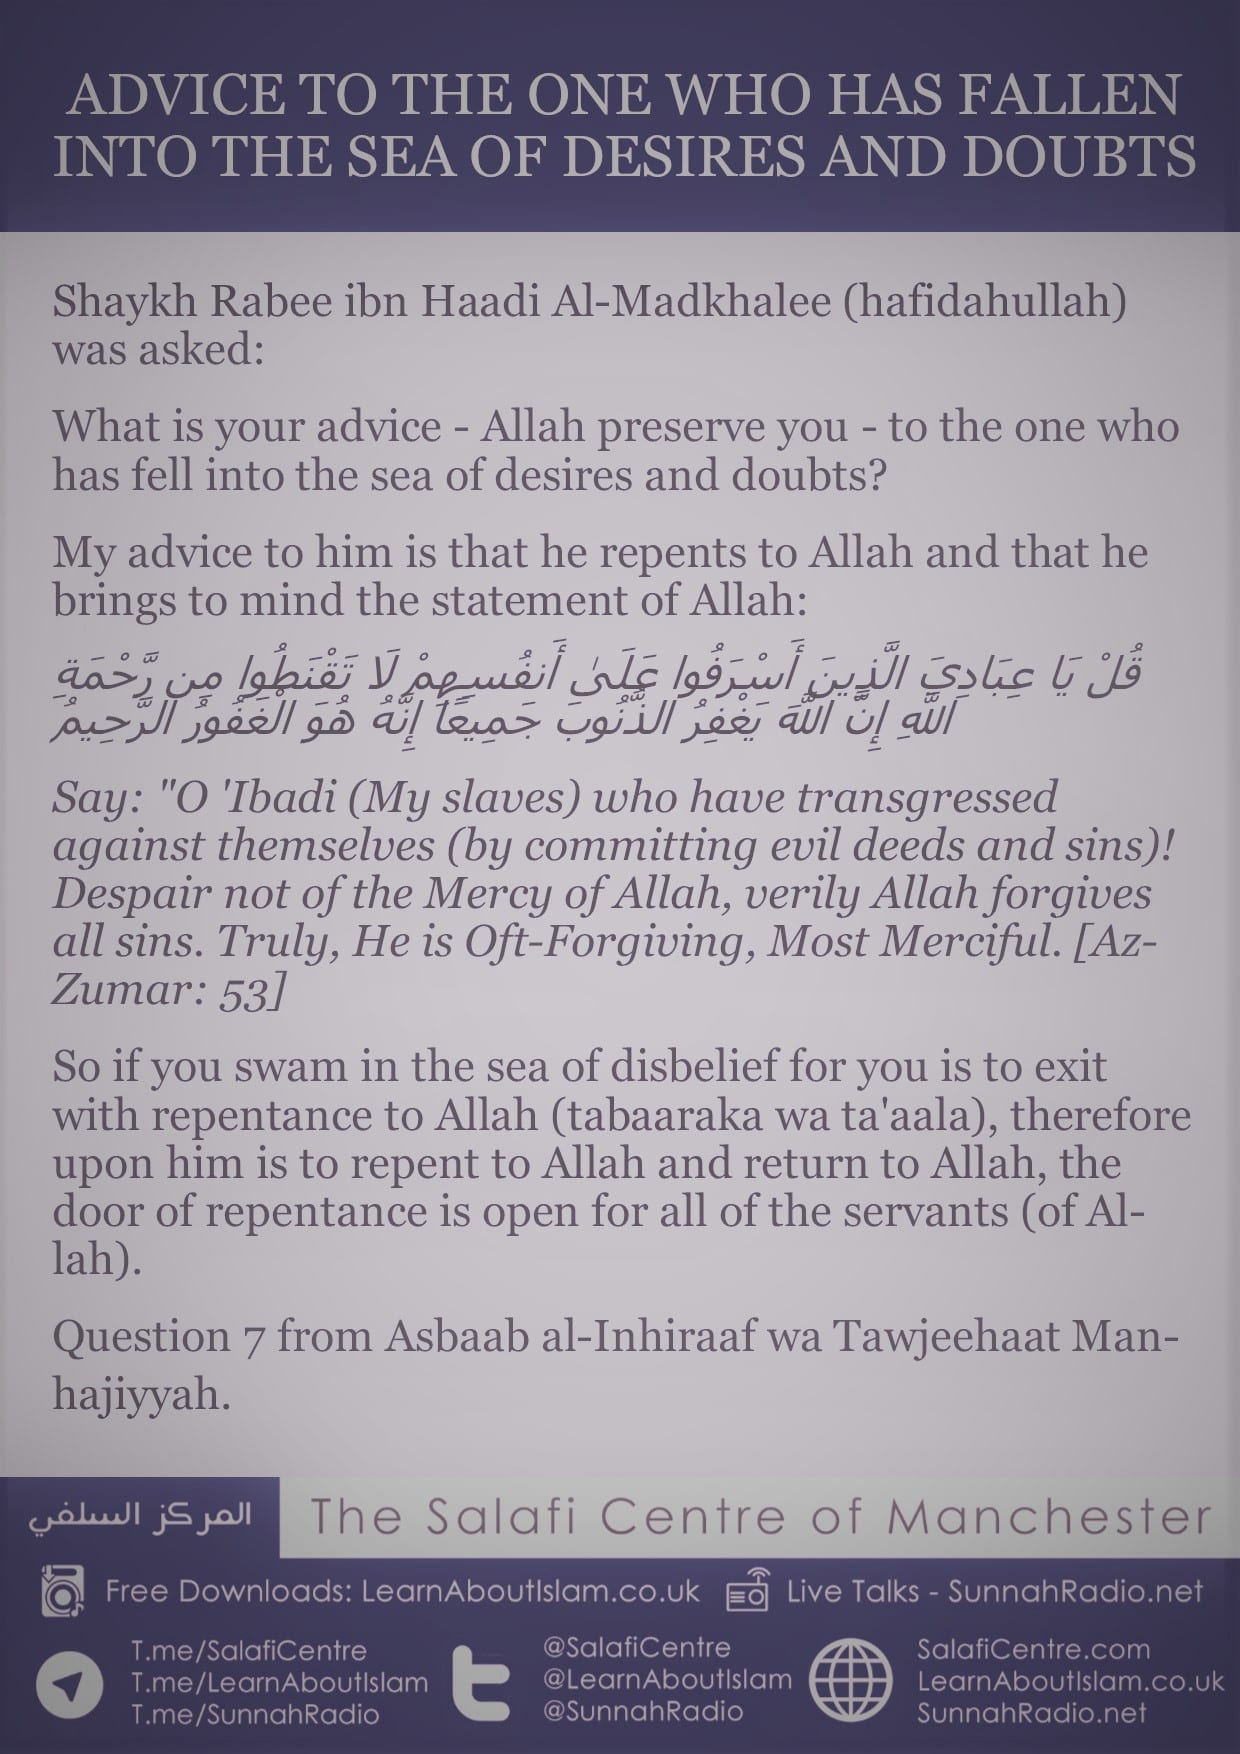 The One Who Has Fallen Into Doubts And Desires – Shaykh Rabee ibn Haadi Al-Madkhalee